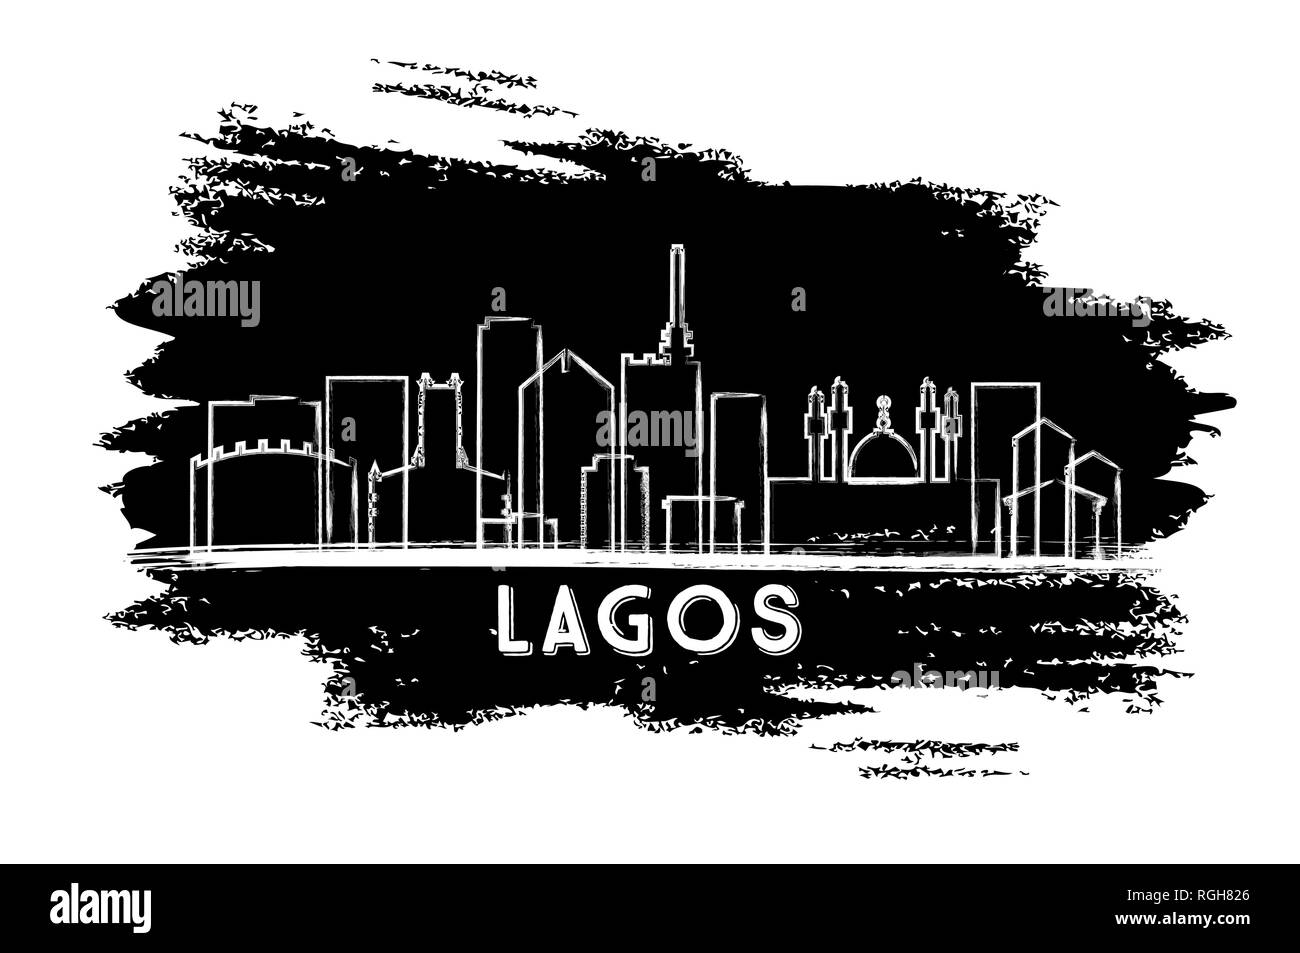 Lagos Nigeria City Skyline Silhouette. Hand Drawn Sketch. Vector Illustration. Business Travel and Tourism Concept with Historic Architecture. - Stock Image